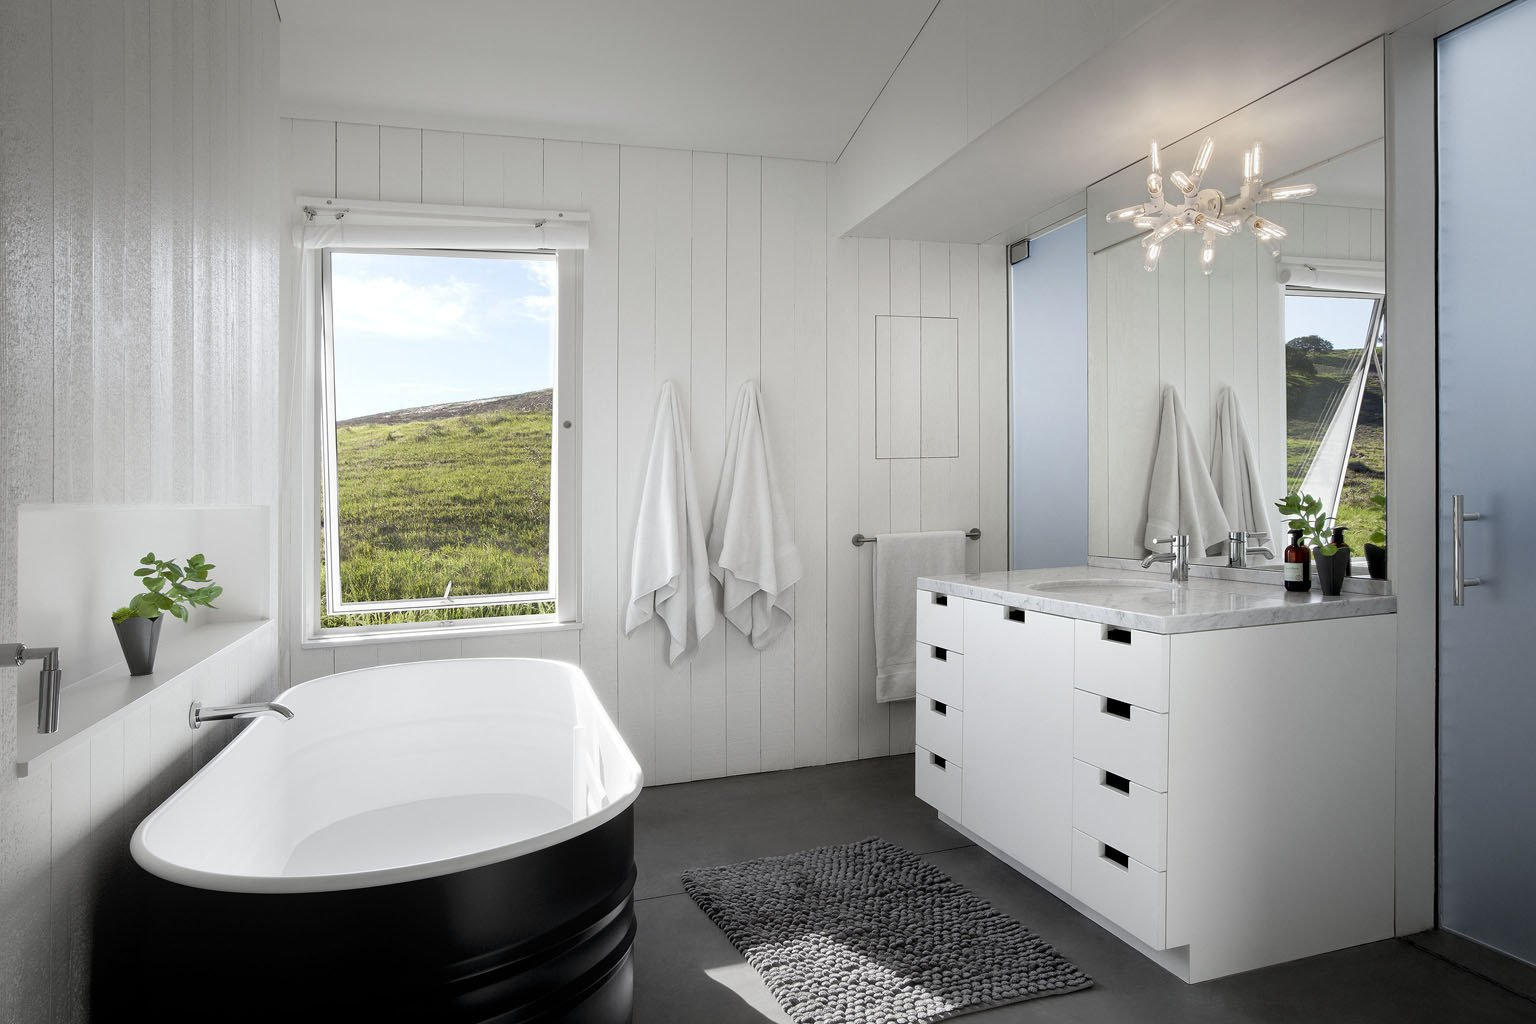 Photo 2 of 2 in Bathroom by Ibrahim Hastopalli from Torres House - Dwell